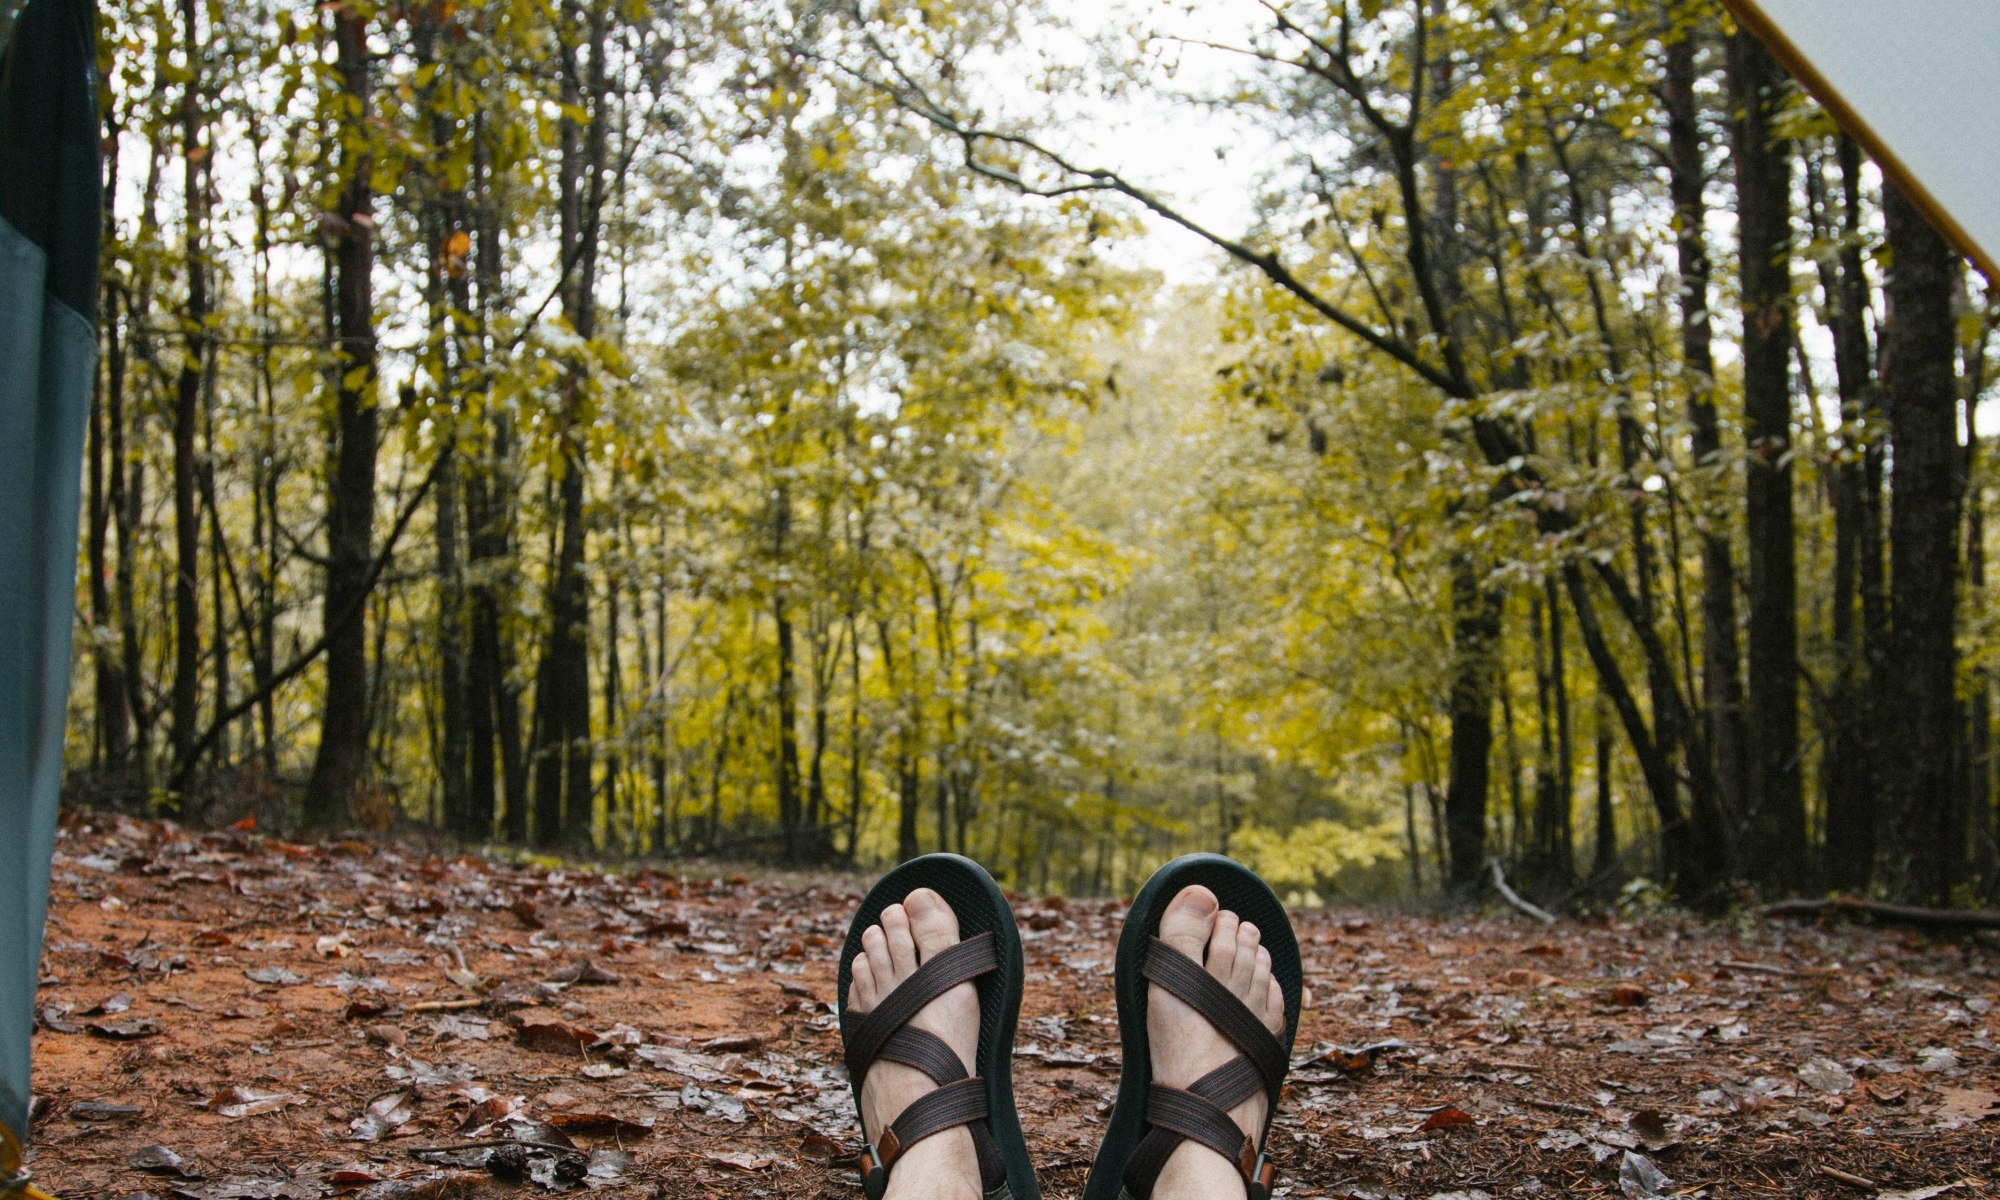 WEARING CHACO SANDALS IN A TENT IN THE WOODS